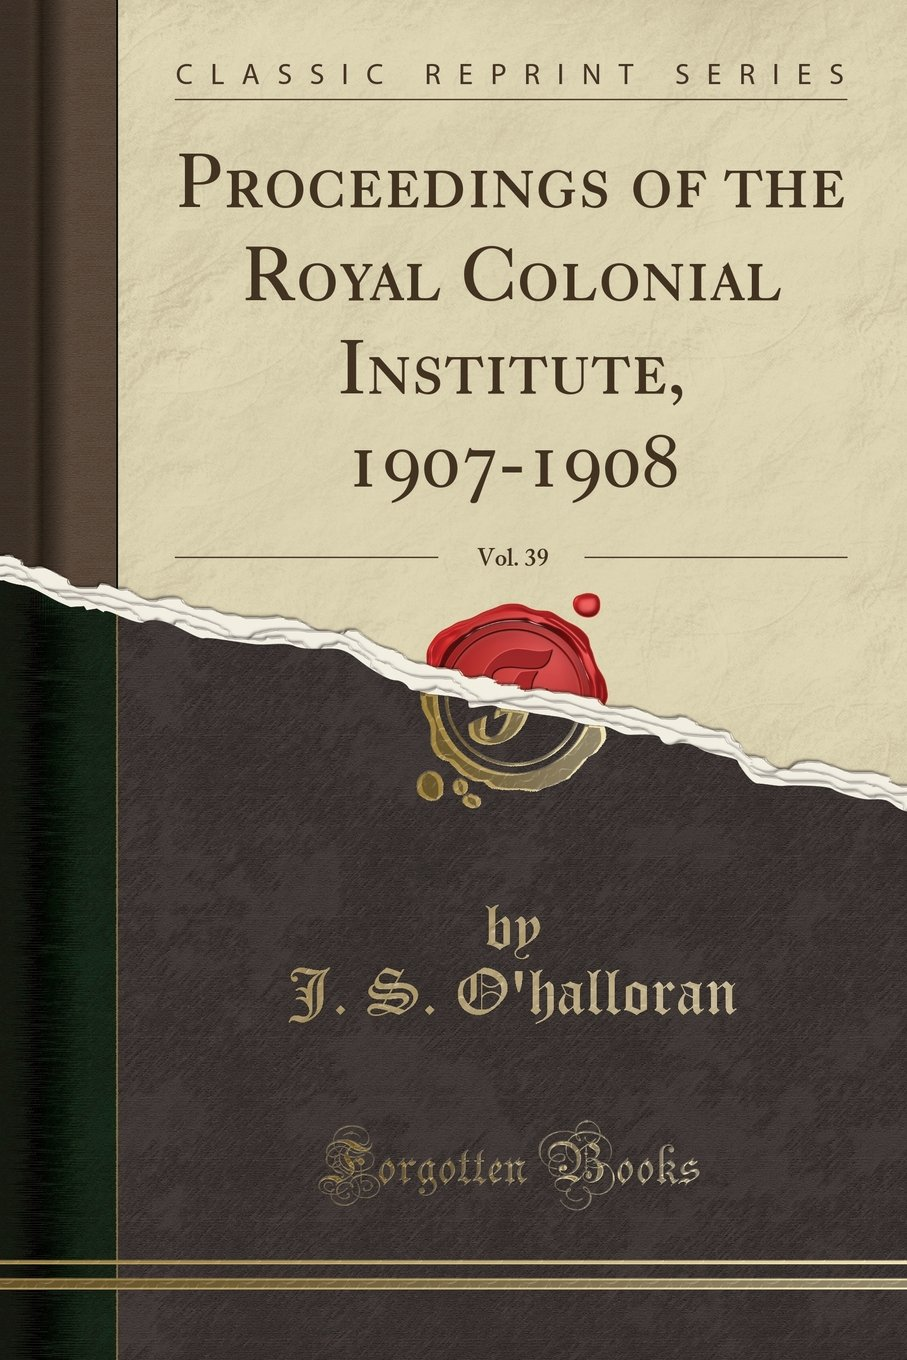 Read Online Proceedings of the Royal Colonial Institute, 1907-1908, Vol. 39 (Classic Reprint) ebook